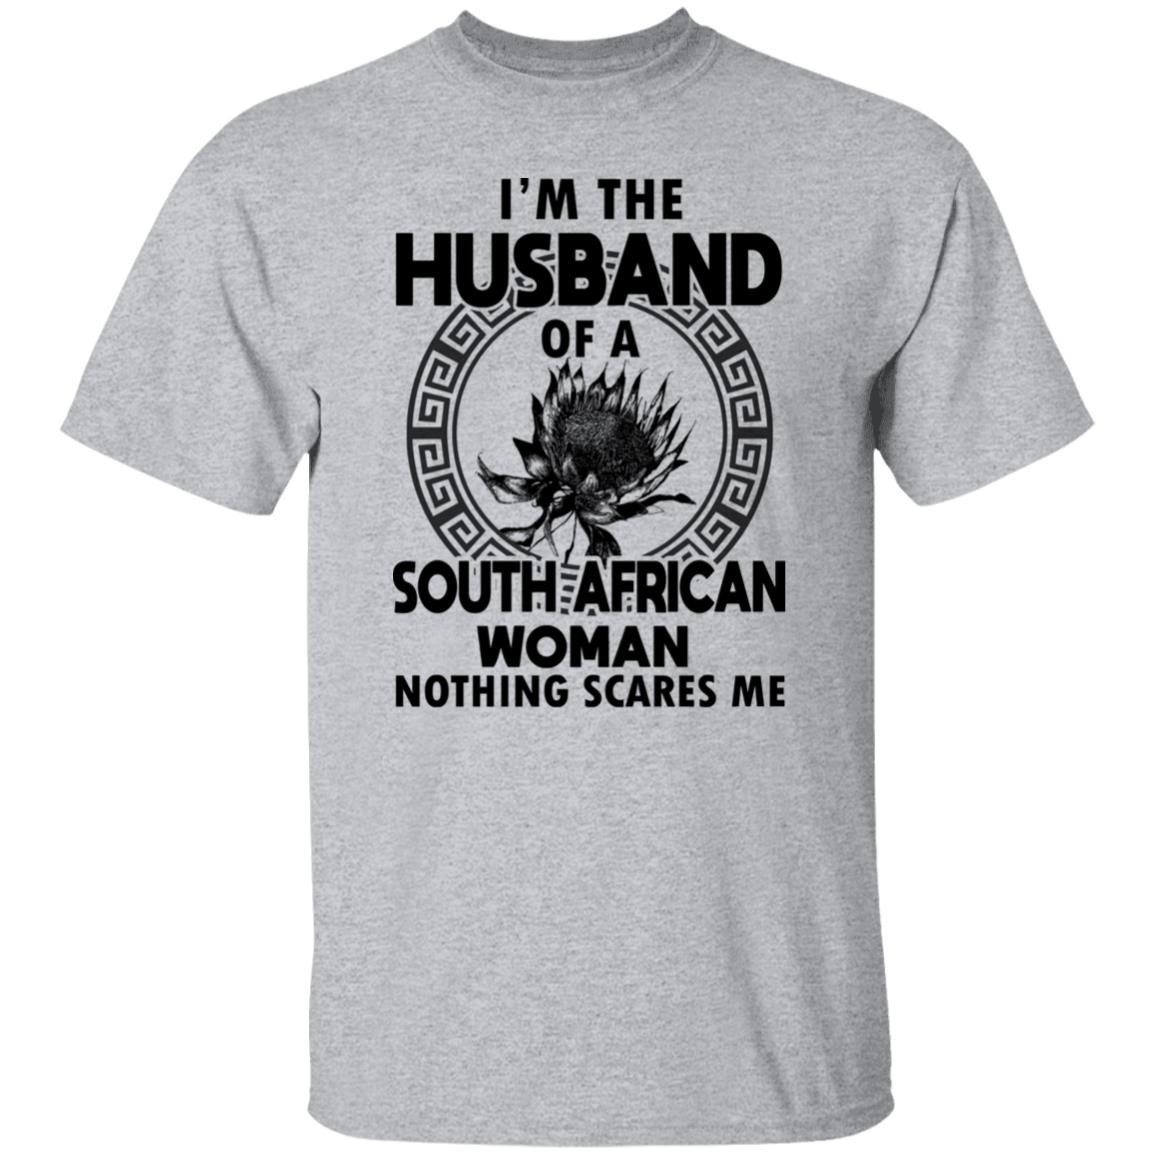 I'M THE HUSBAND OF A SOUTH AFRICAN WOMAN NOTHING SCARES ME